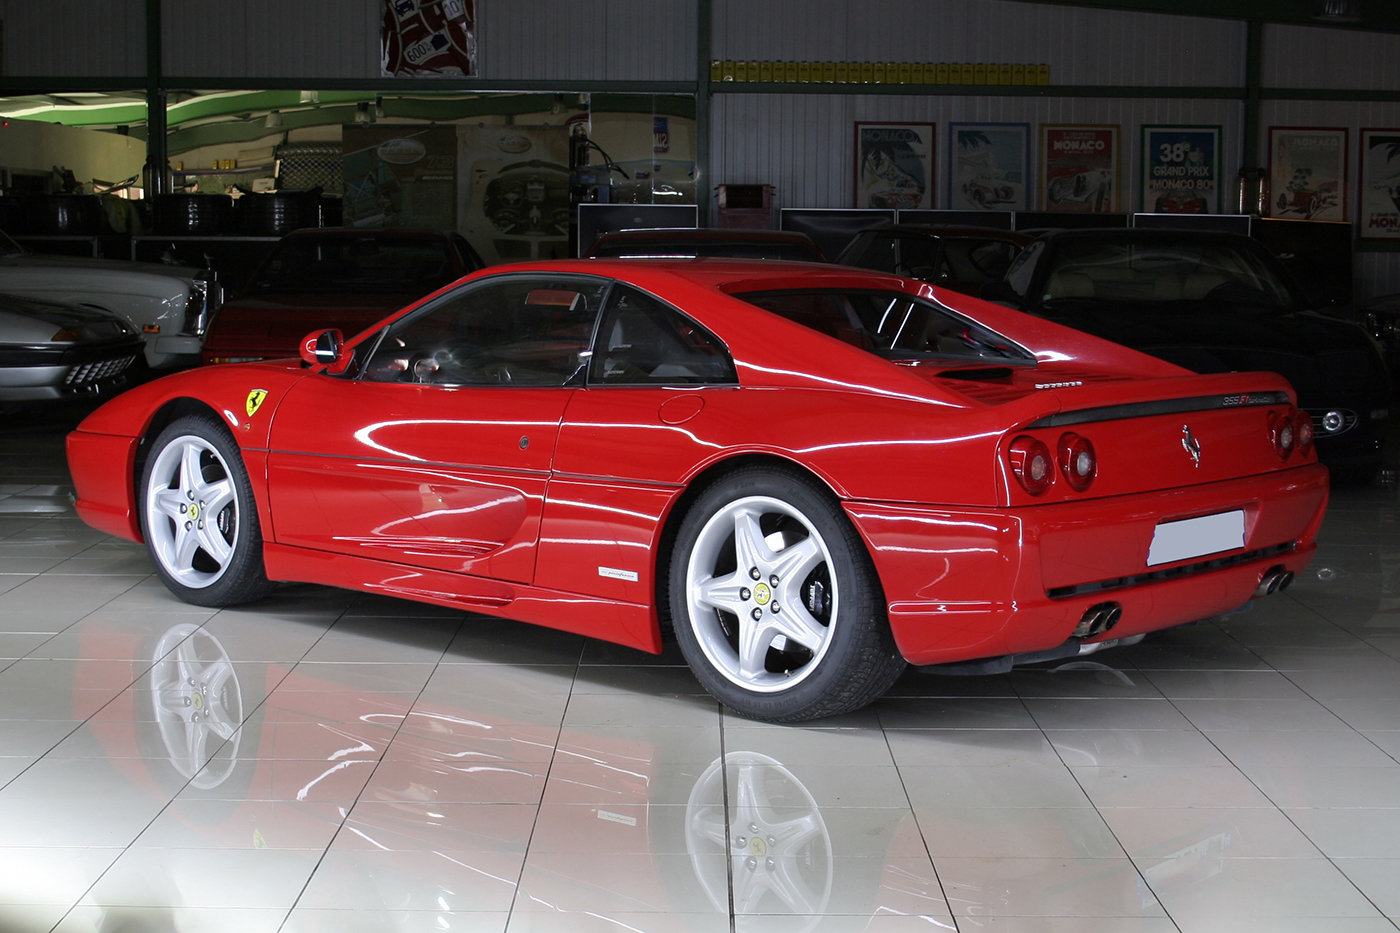 2000 - Ferrari 355 F1 GTB Rosso Corsa - Black For Sale (picture 3 of 6)